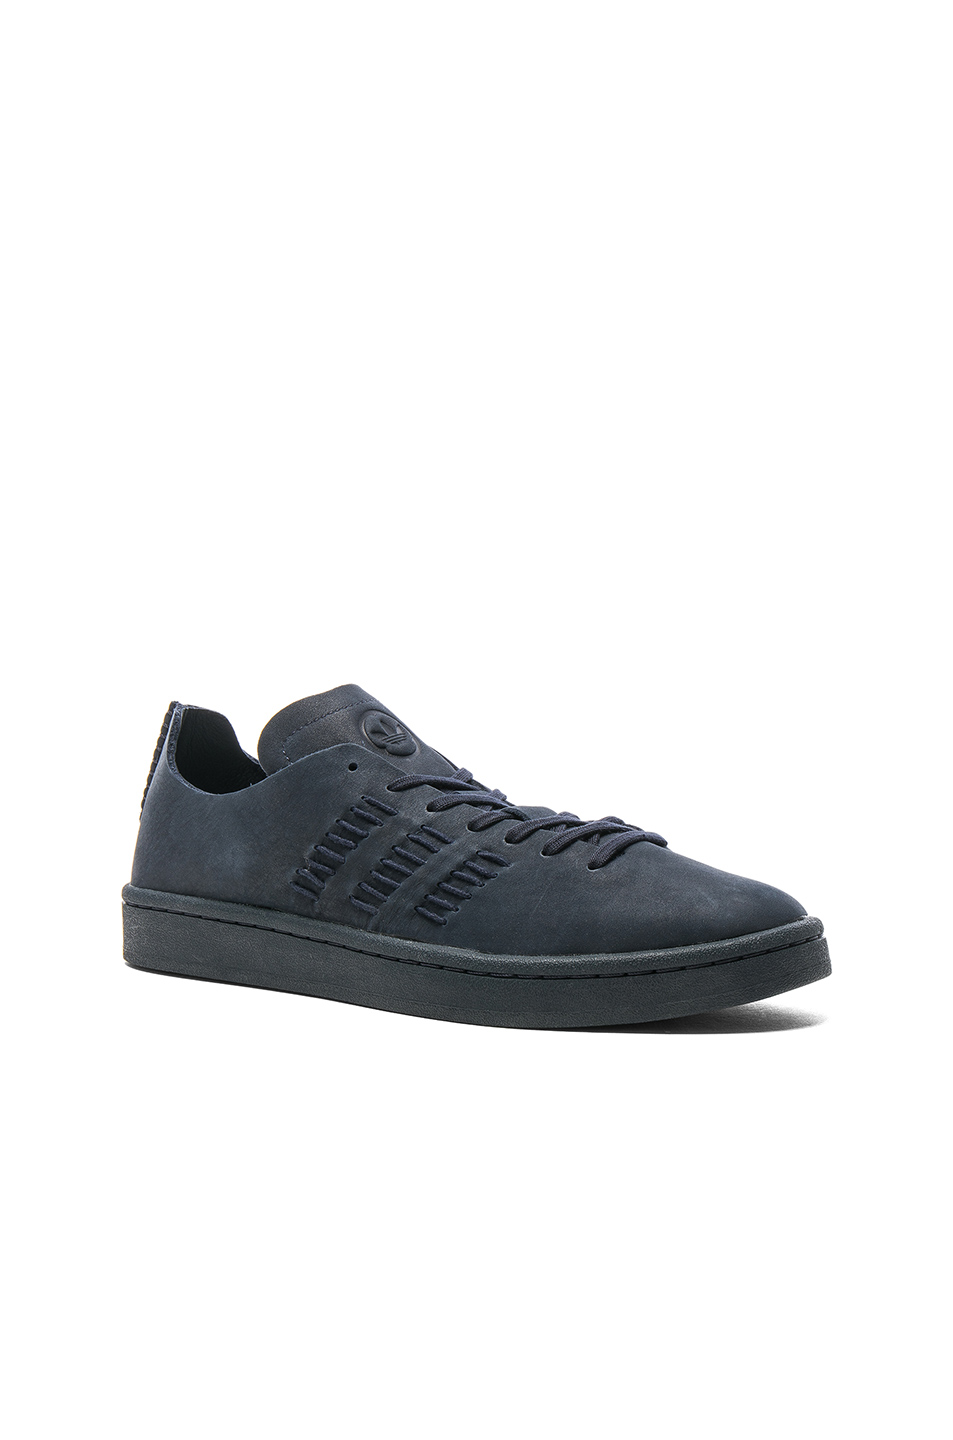 adidas by wings + horns Leather Campus Sneakers in Blue